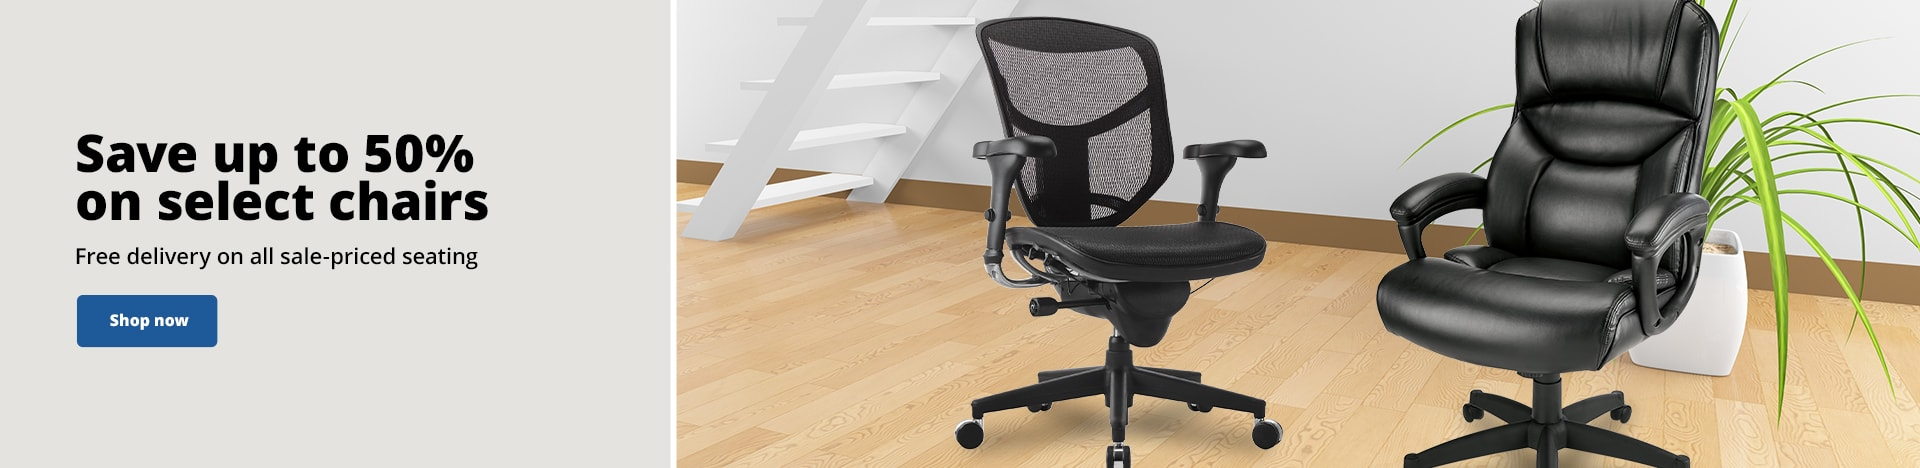 Save up to 50% on select chairs. Free delivery on all sale-priced seating